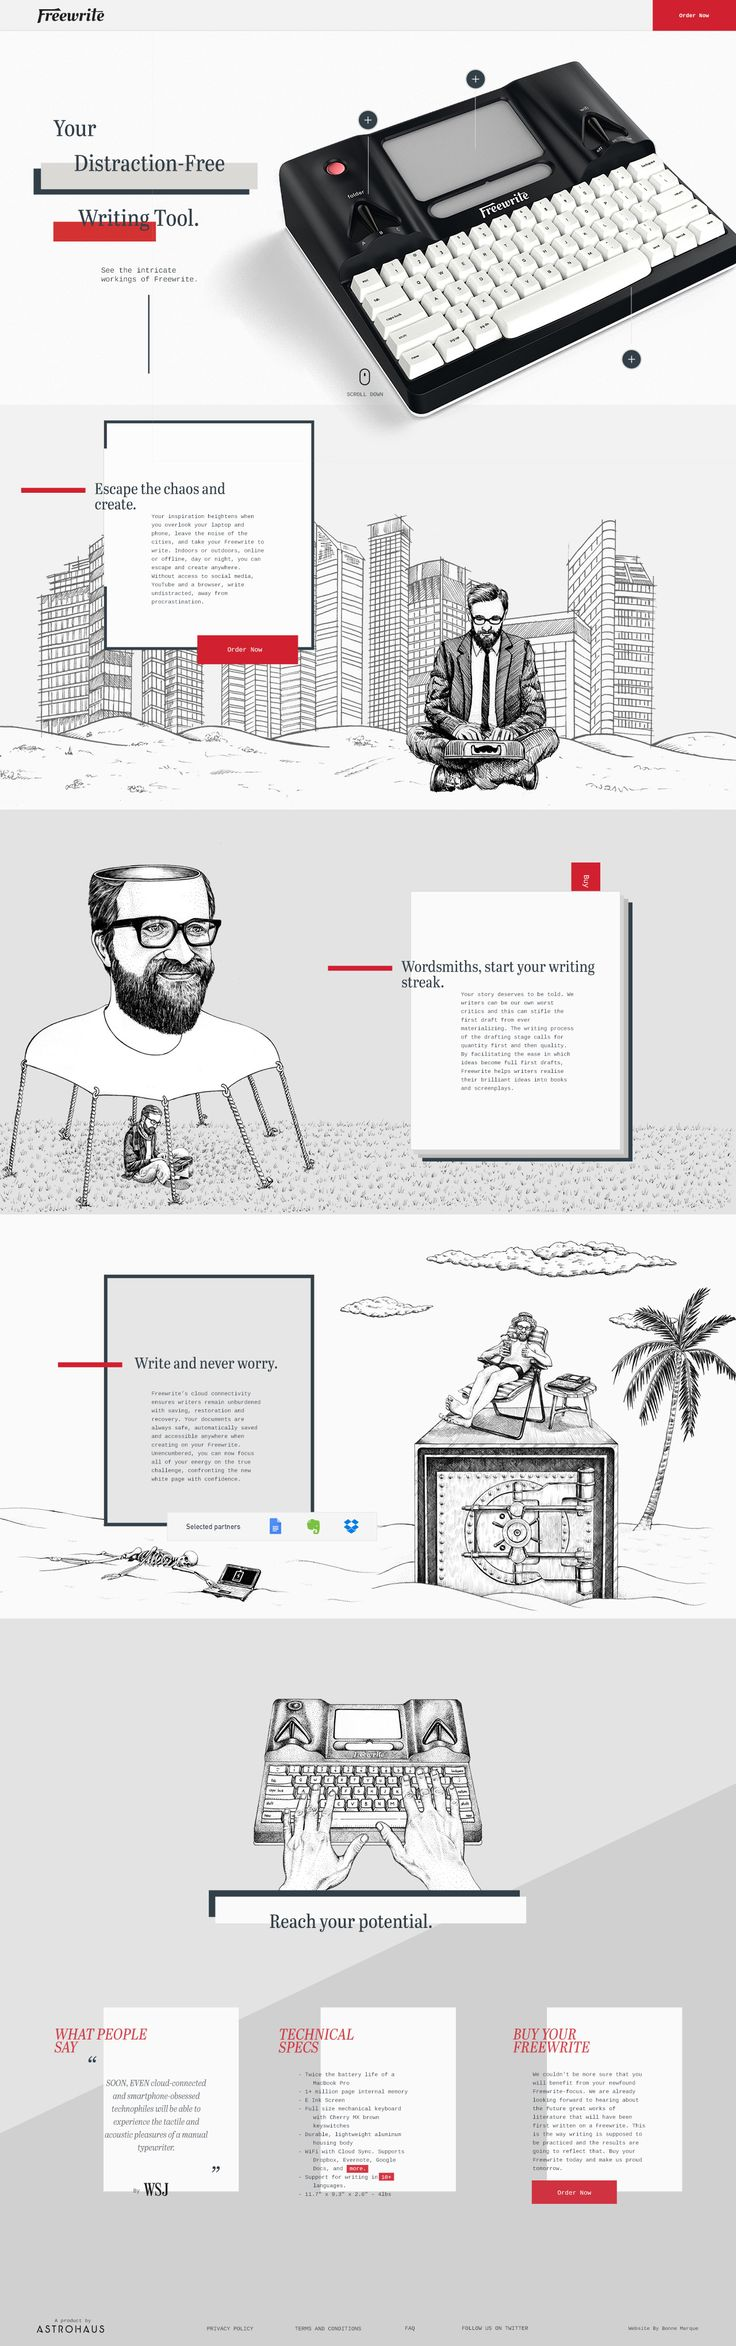 """Awesome Parallax scrolling One Pager filled with fun custom illustrations and animations for a new """"smart typewriter"""" product called 'Freewrite'."""